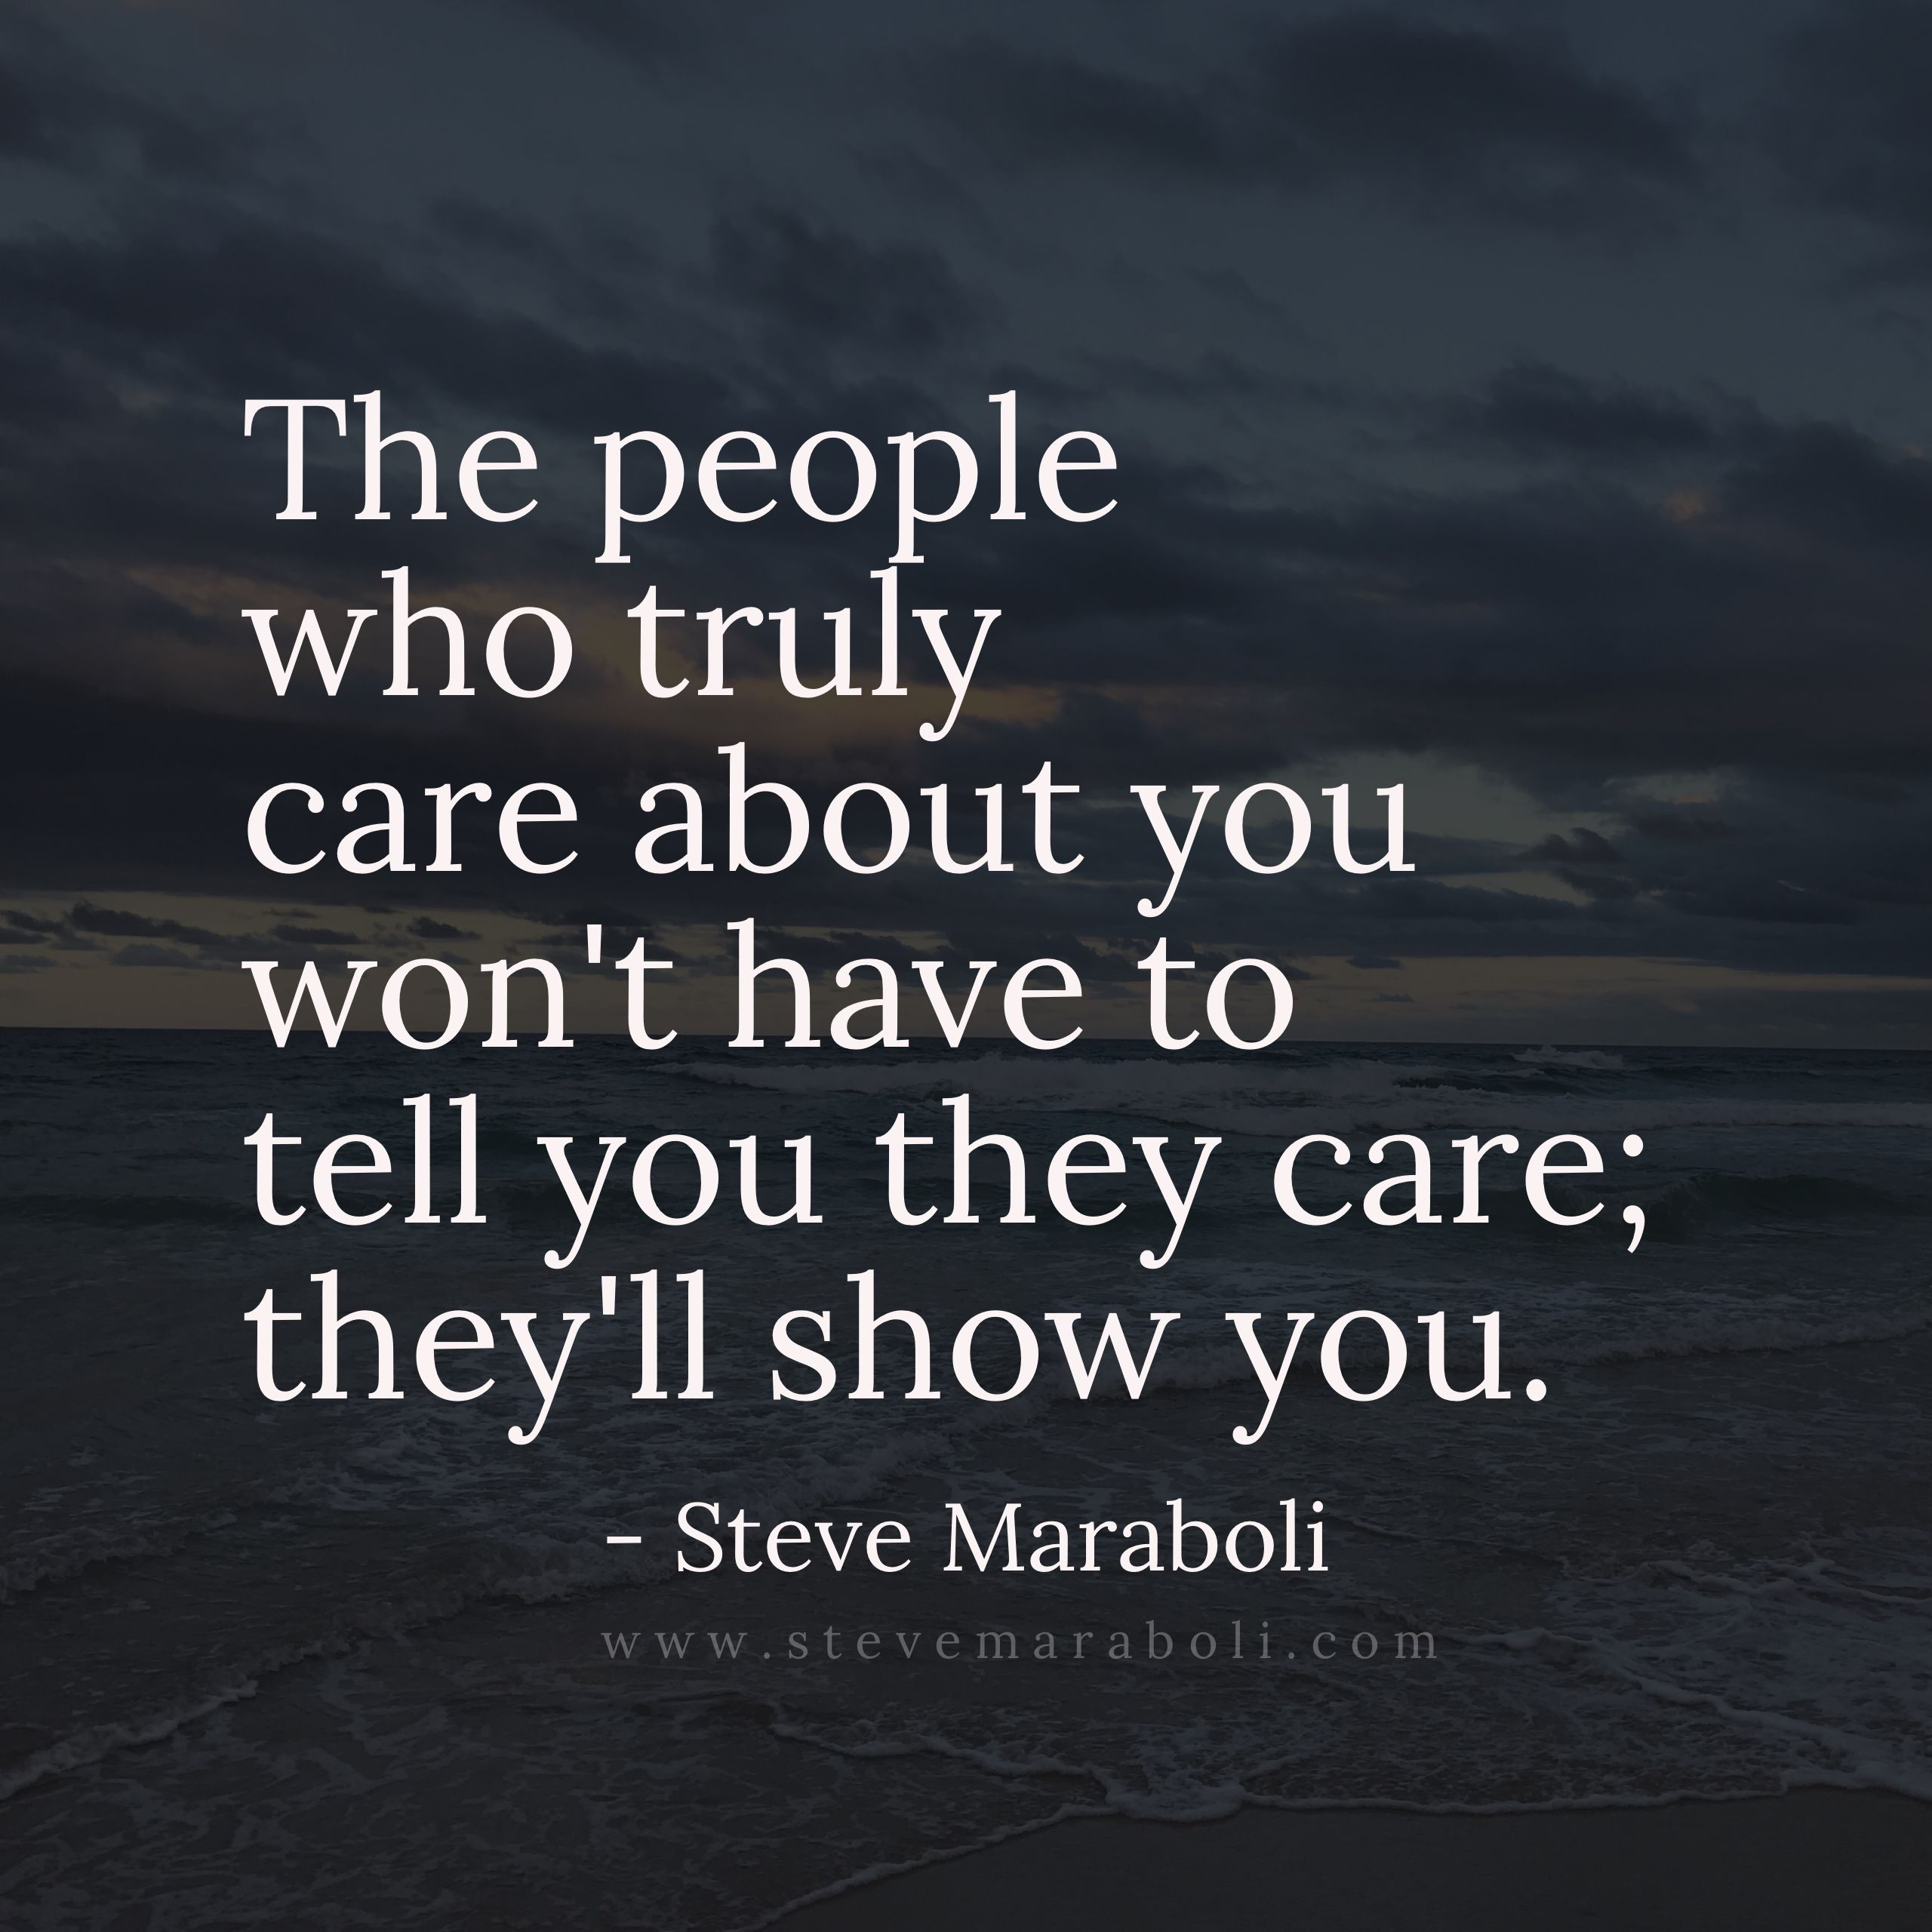 Care For Him Quotes: The People Who Truly Care About You Won't Have To Tell You